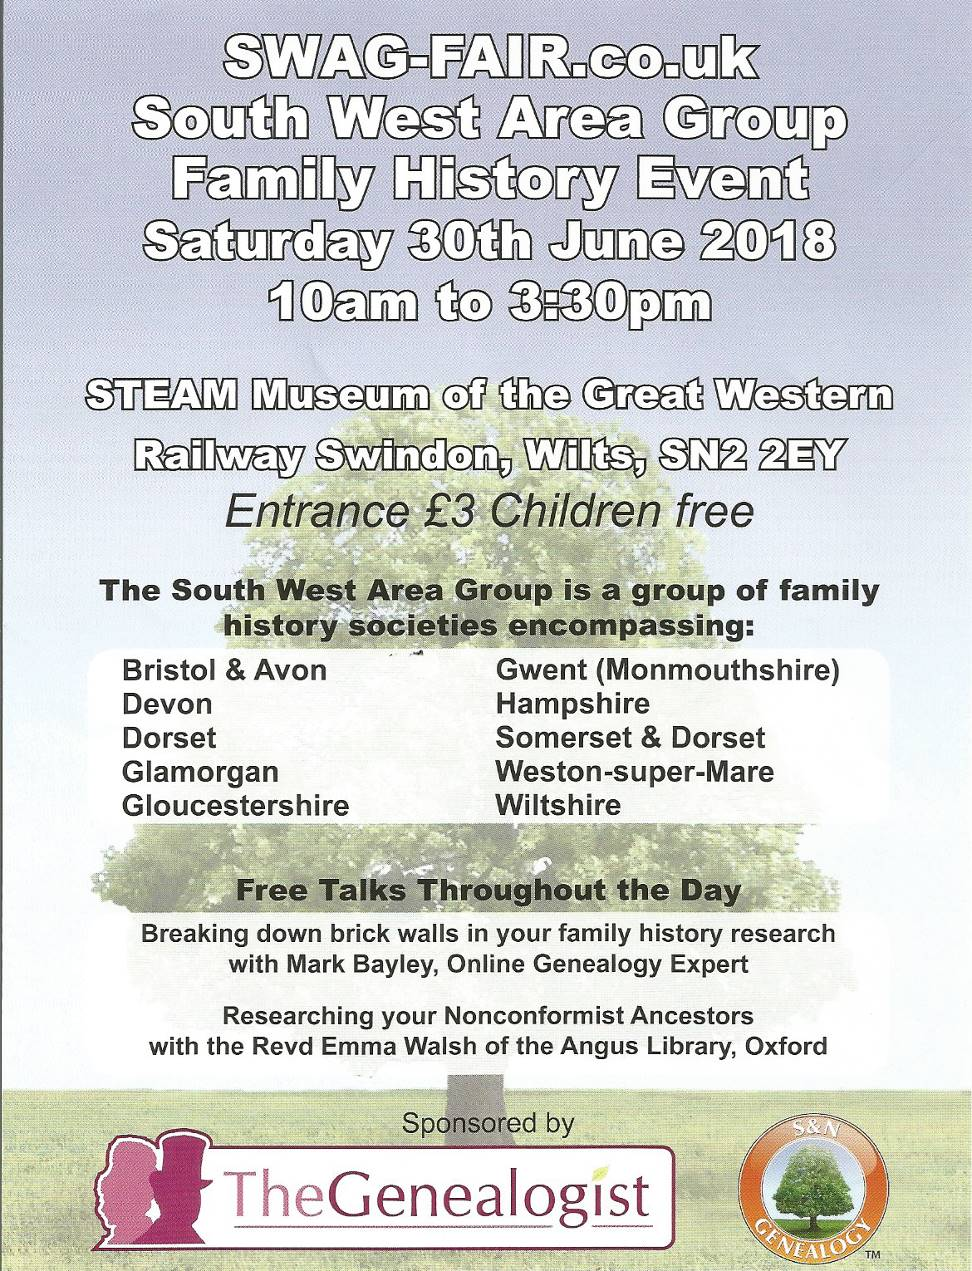 South West Area Group Fair - Saturday 30 June